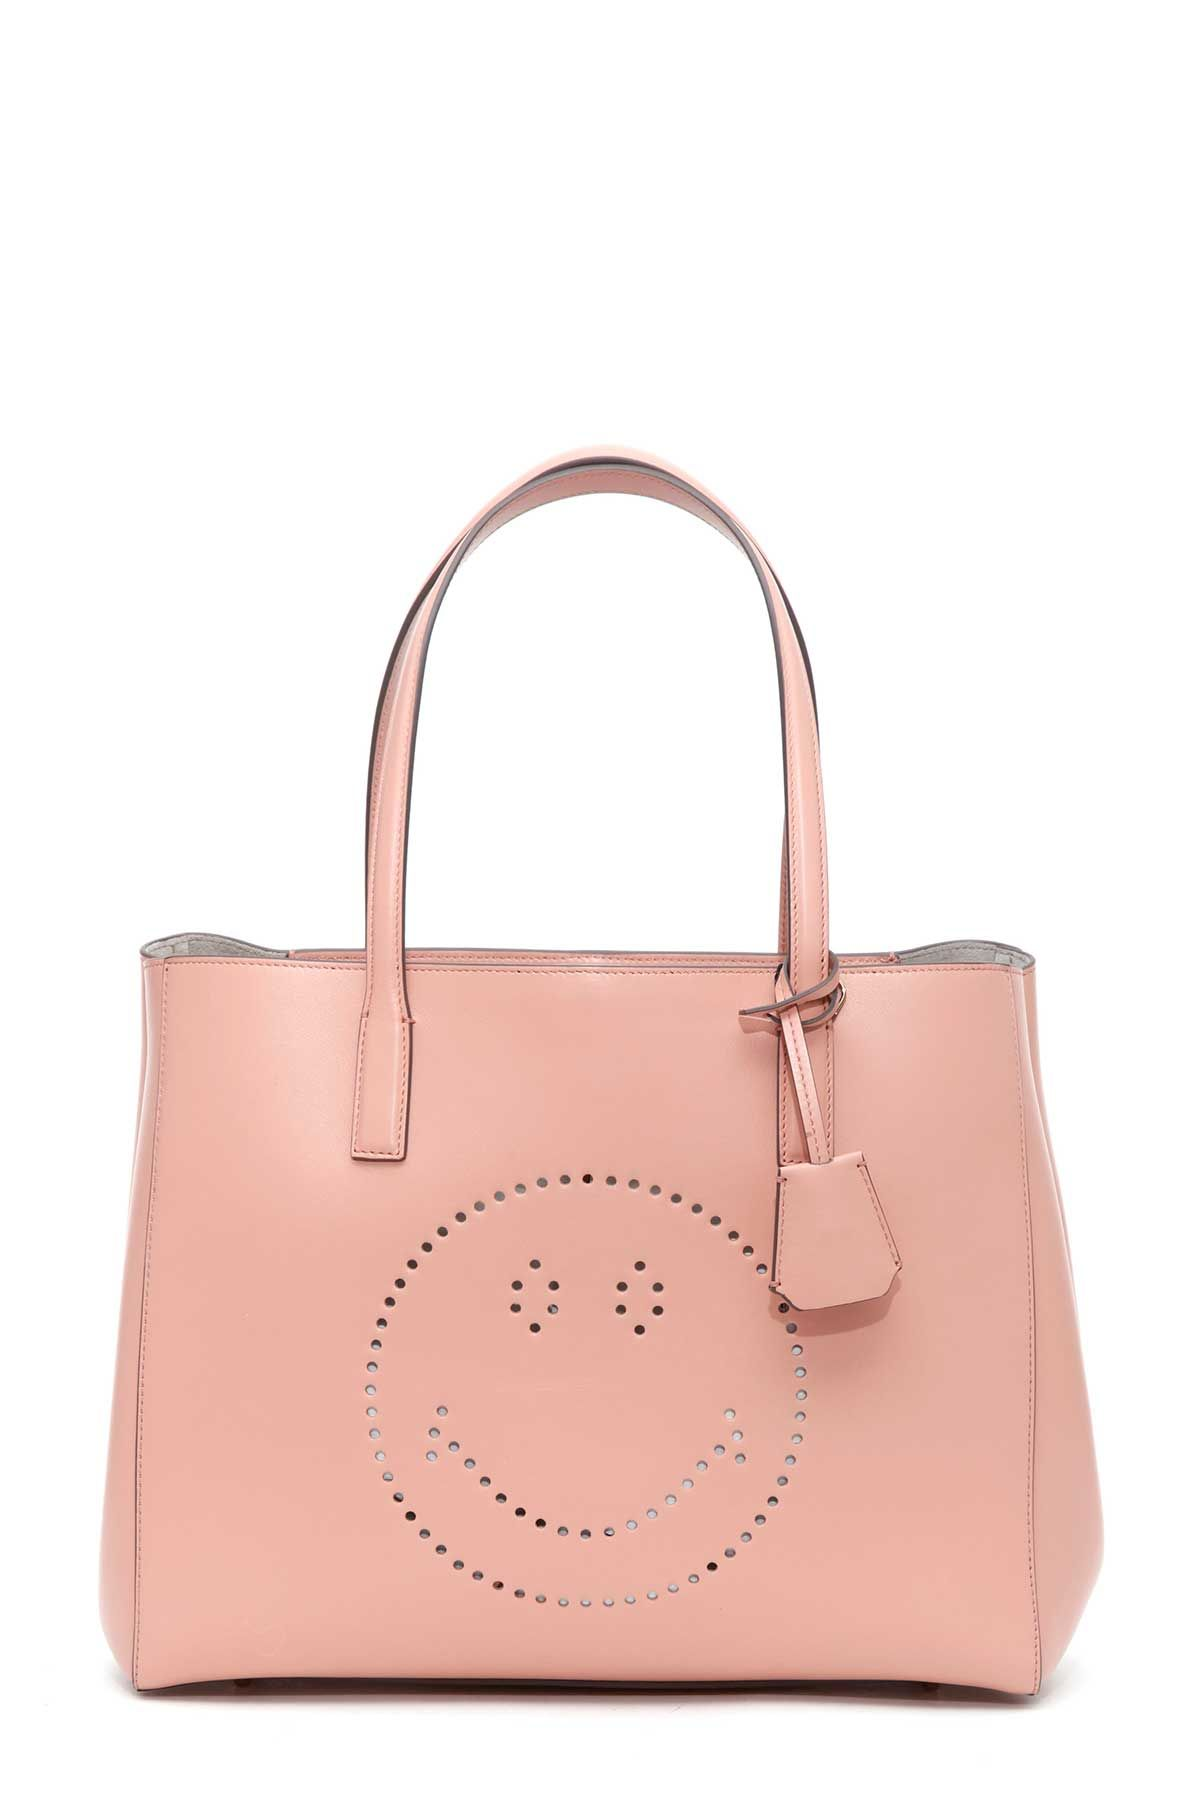 Anya Hindmarch smiley Ebury Shopper